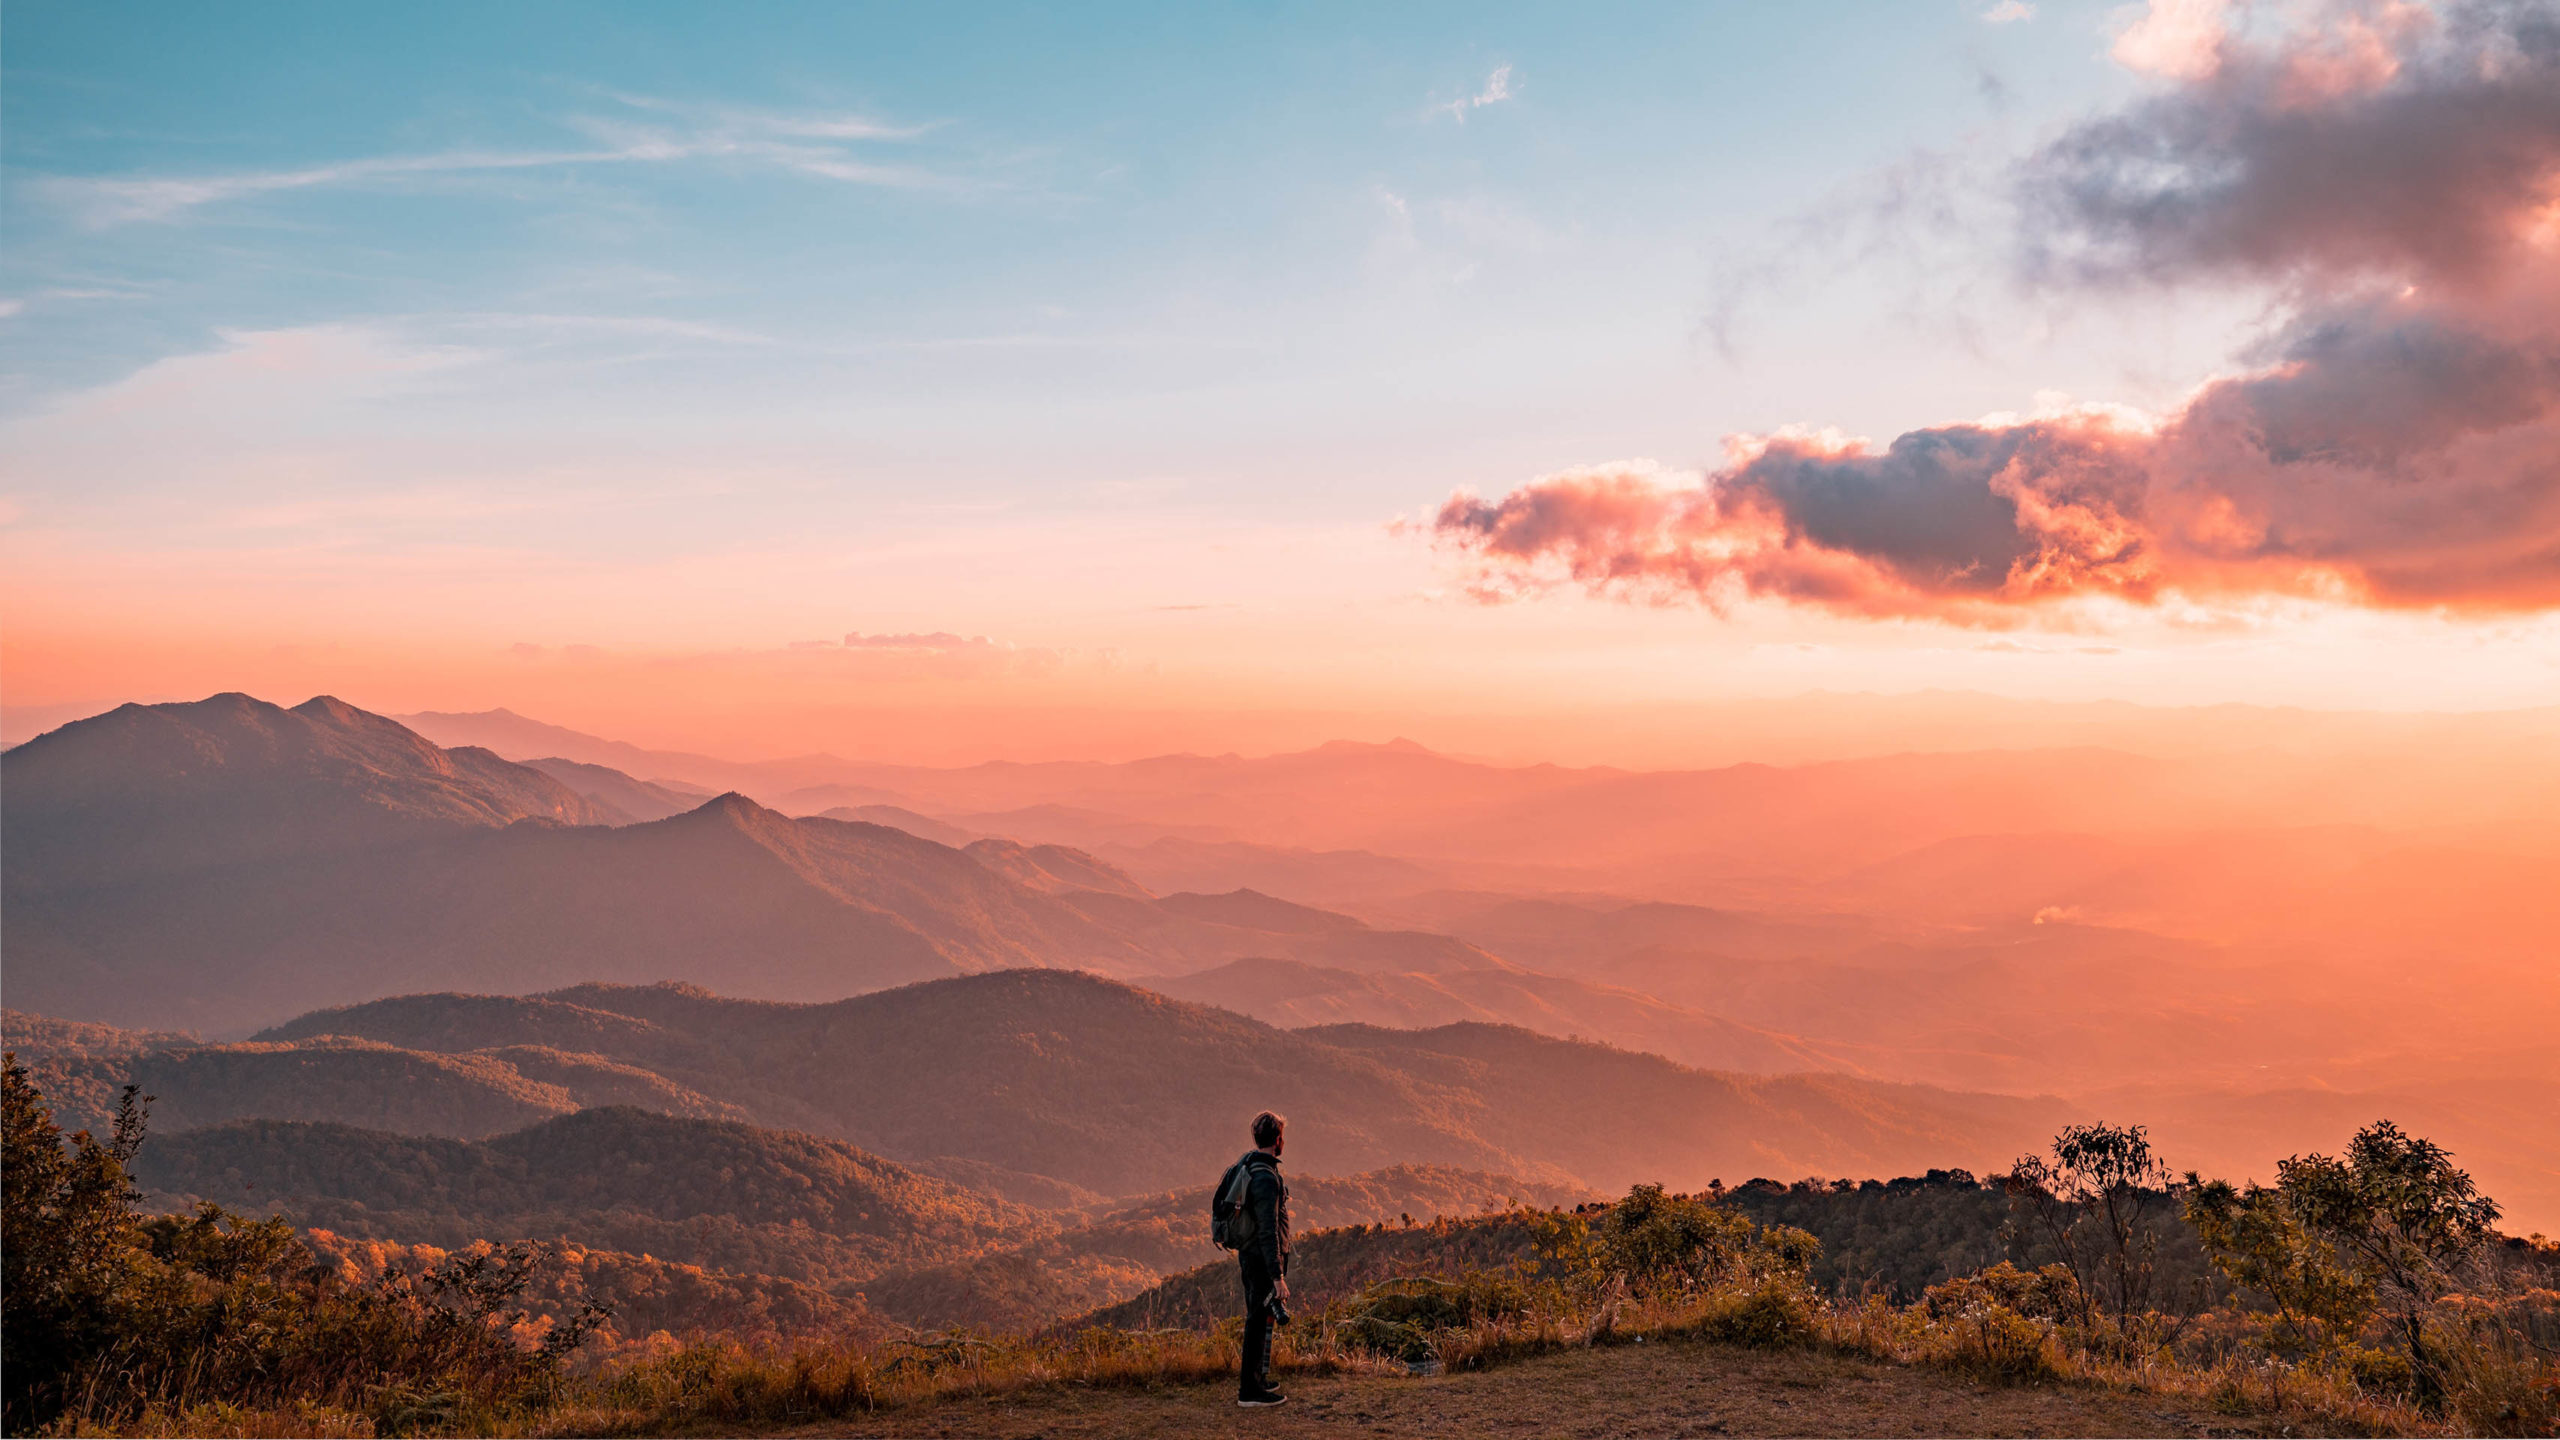 A silhouette of a man hiking on mountains